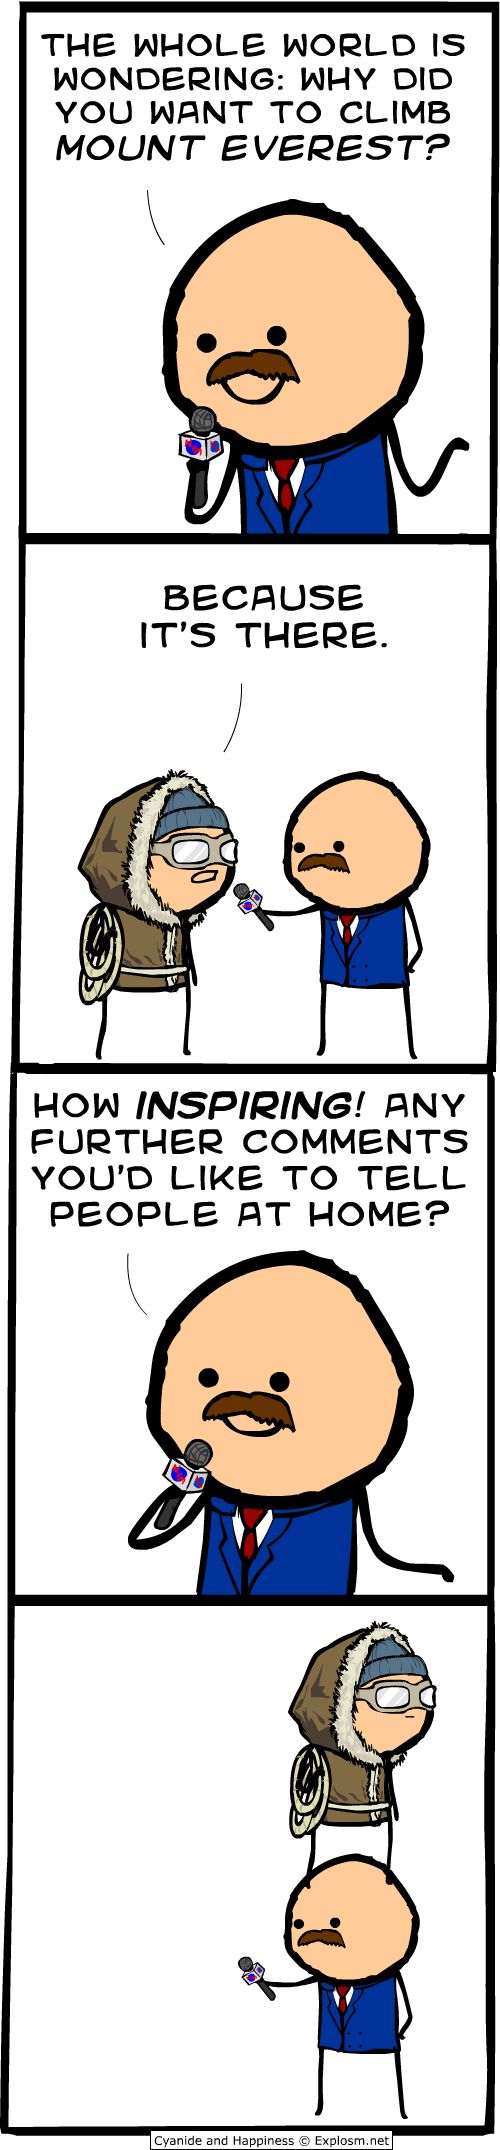 Cyanide and Happiness: Because it's there, Mt. Everest, Backpacking, Climbing, Mountaineering